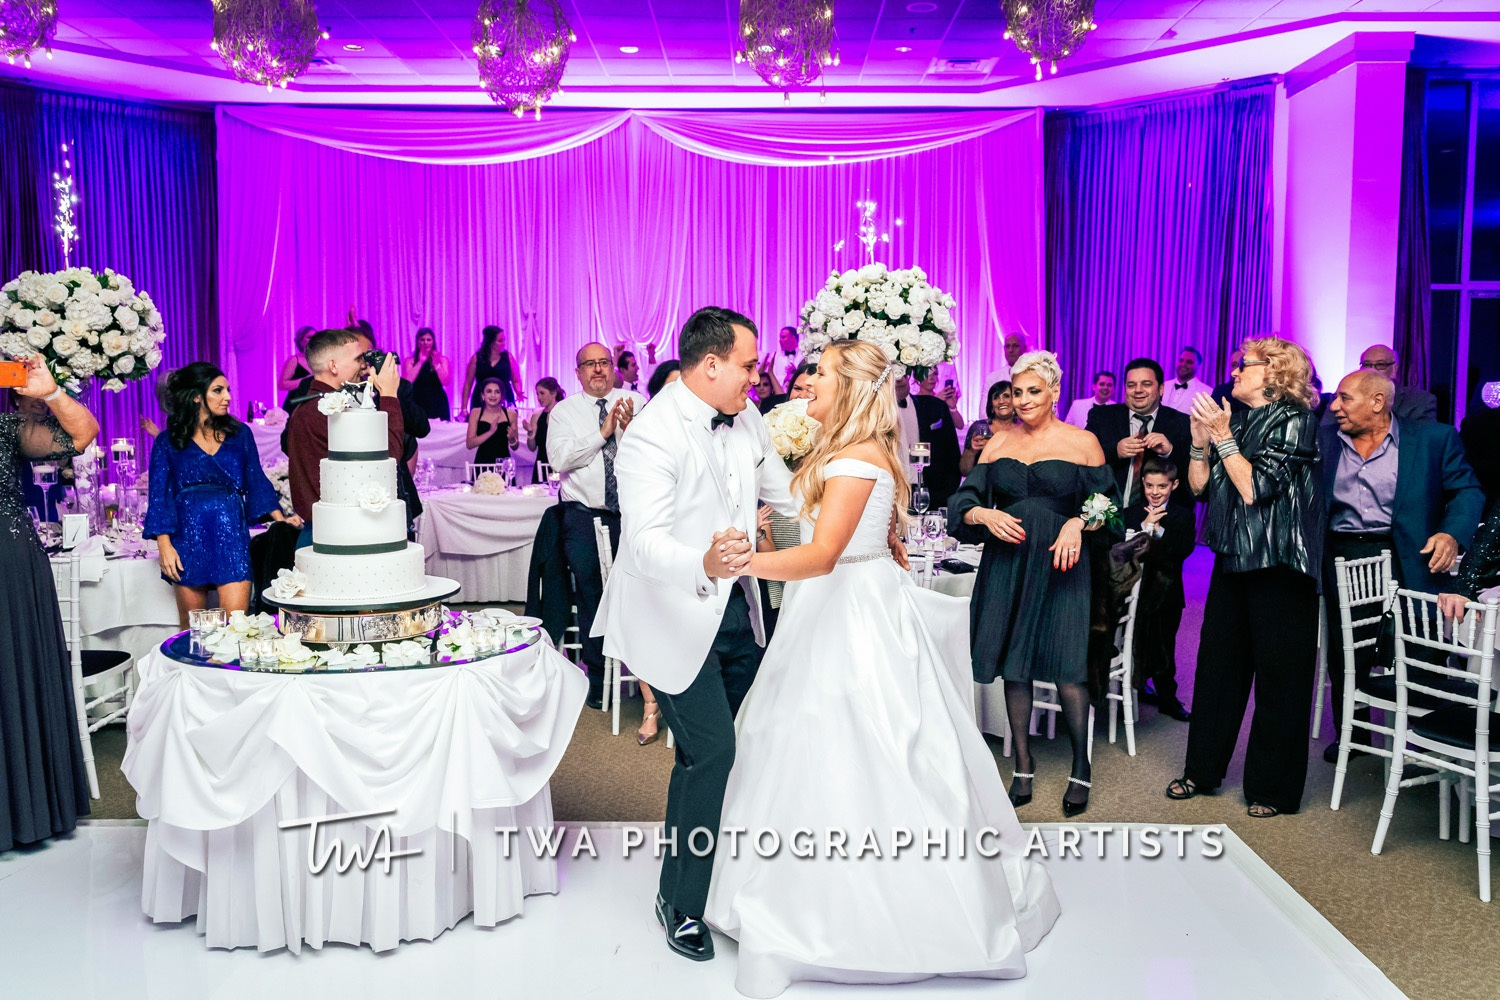 Chicago-Wedding-Photographer-TWA-Photographic-Artists-Belvedere-Banquets_Anast_Campanella_MiC_ME-1295